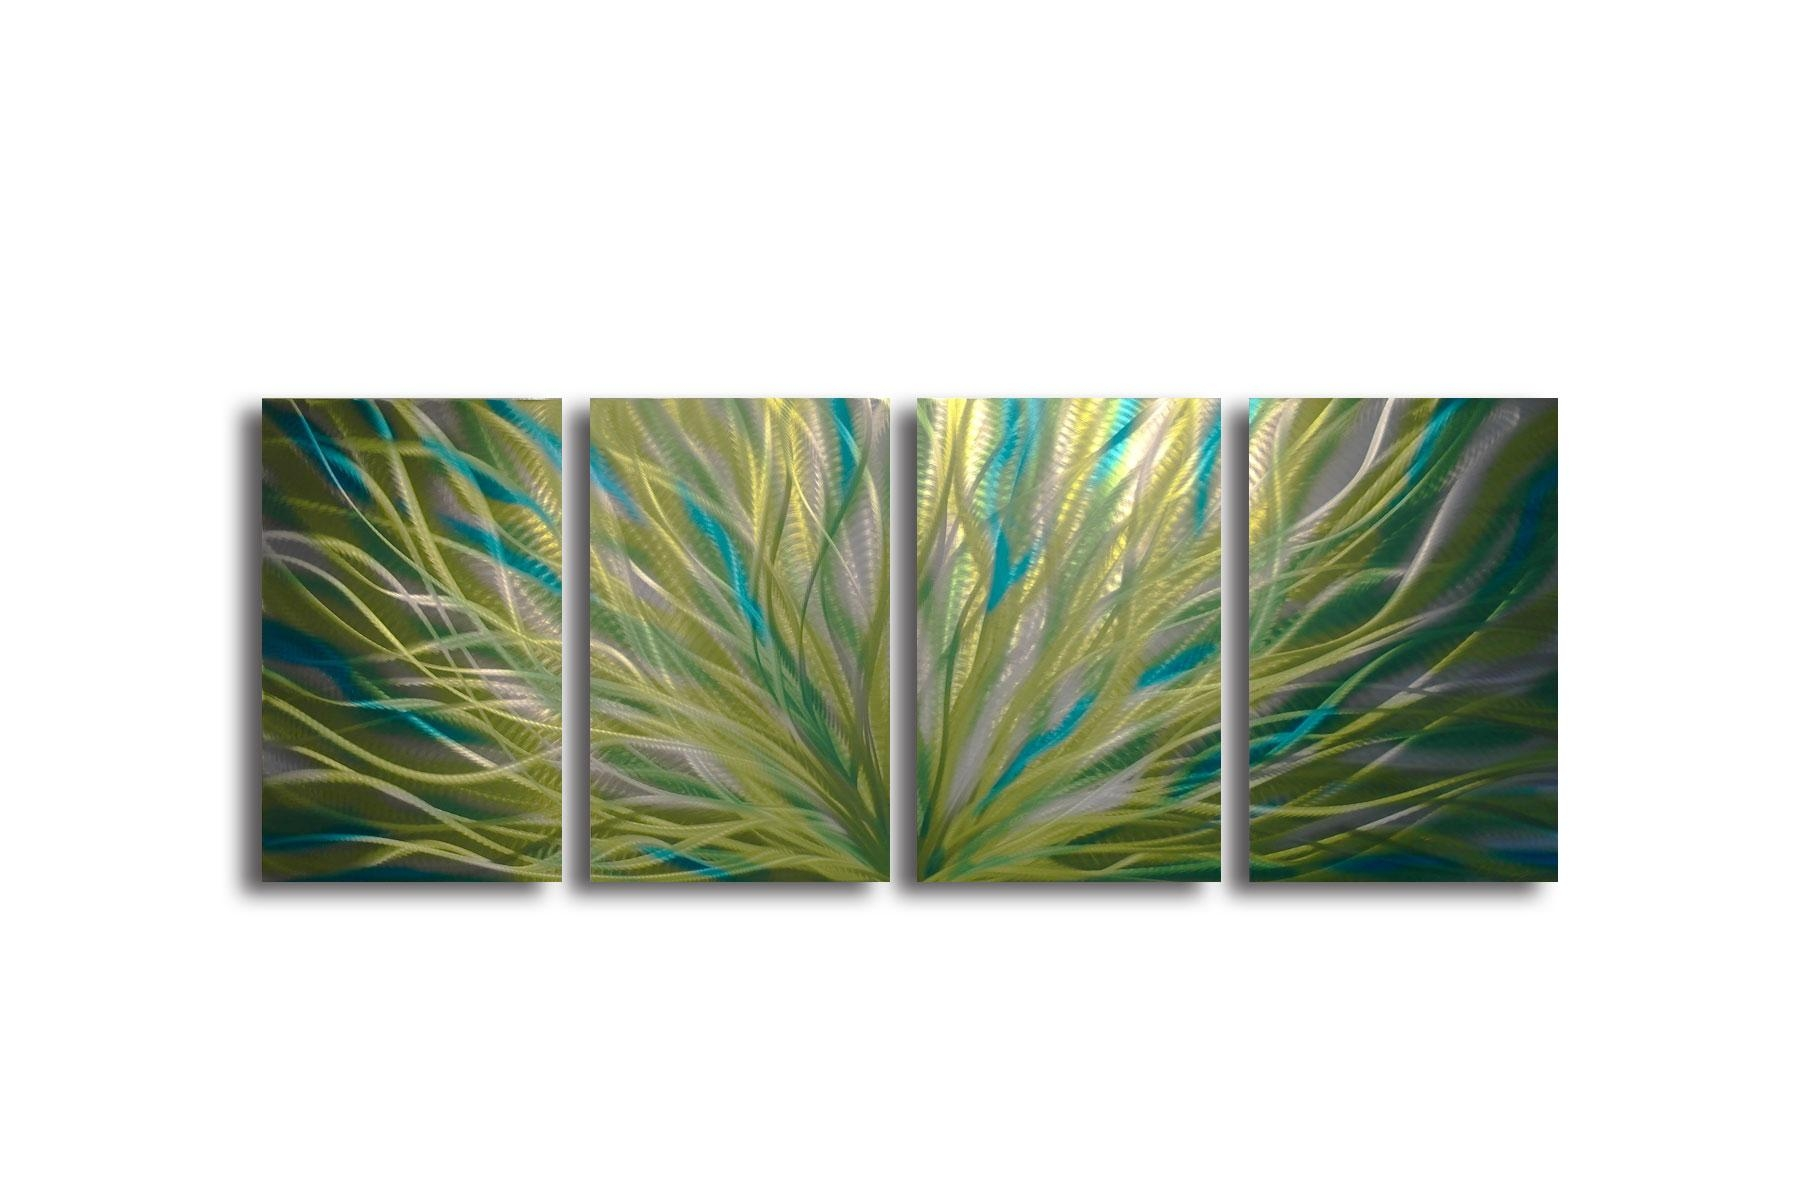 Radiance Cyan Chartreuse – Abstract Metal Wall Art Contemporary Within Turquoise Metal Wall Art (View 13 of 20)